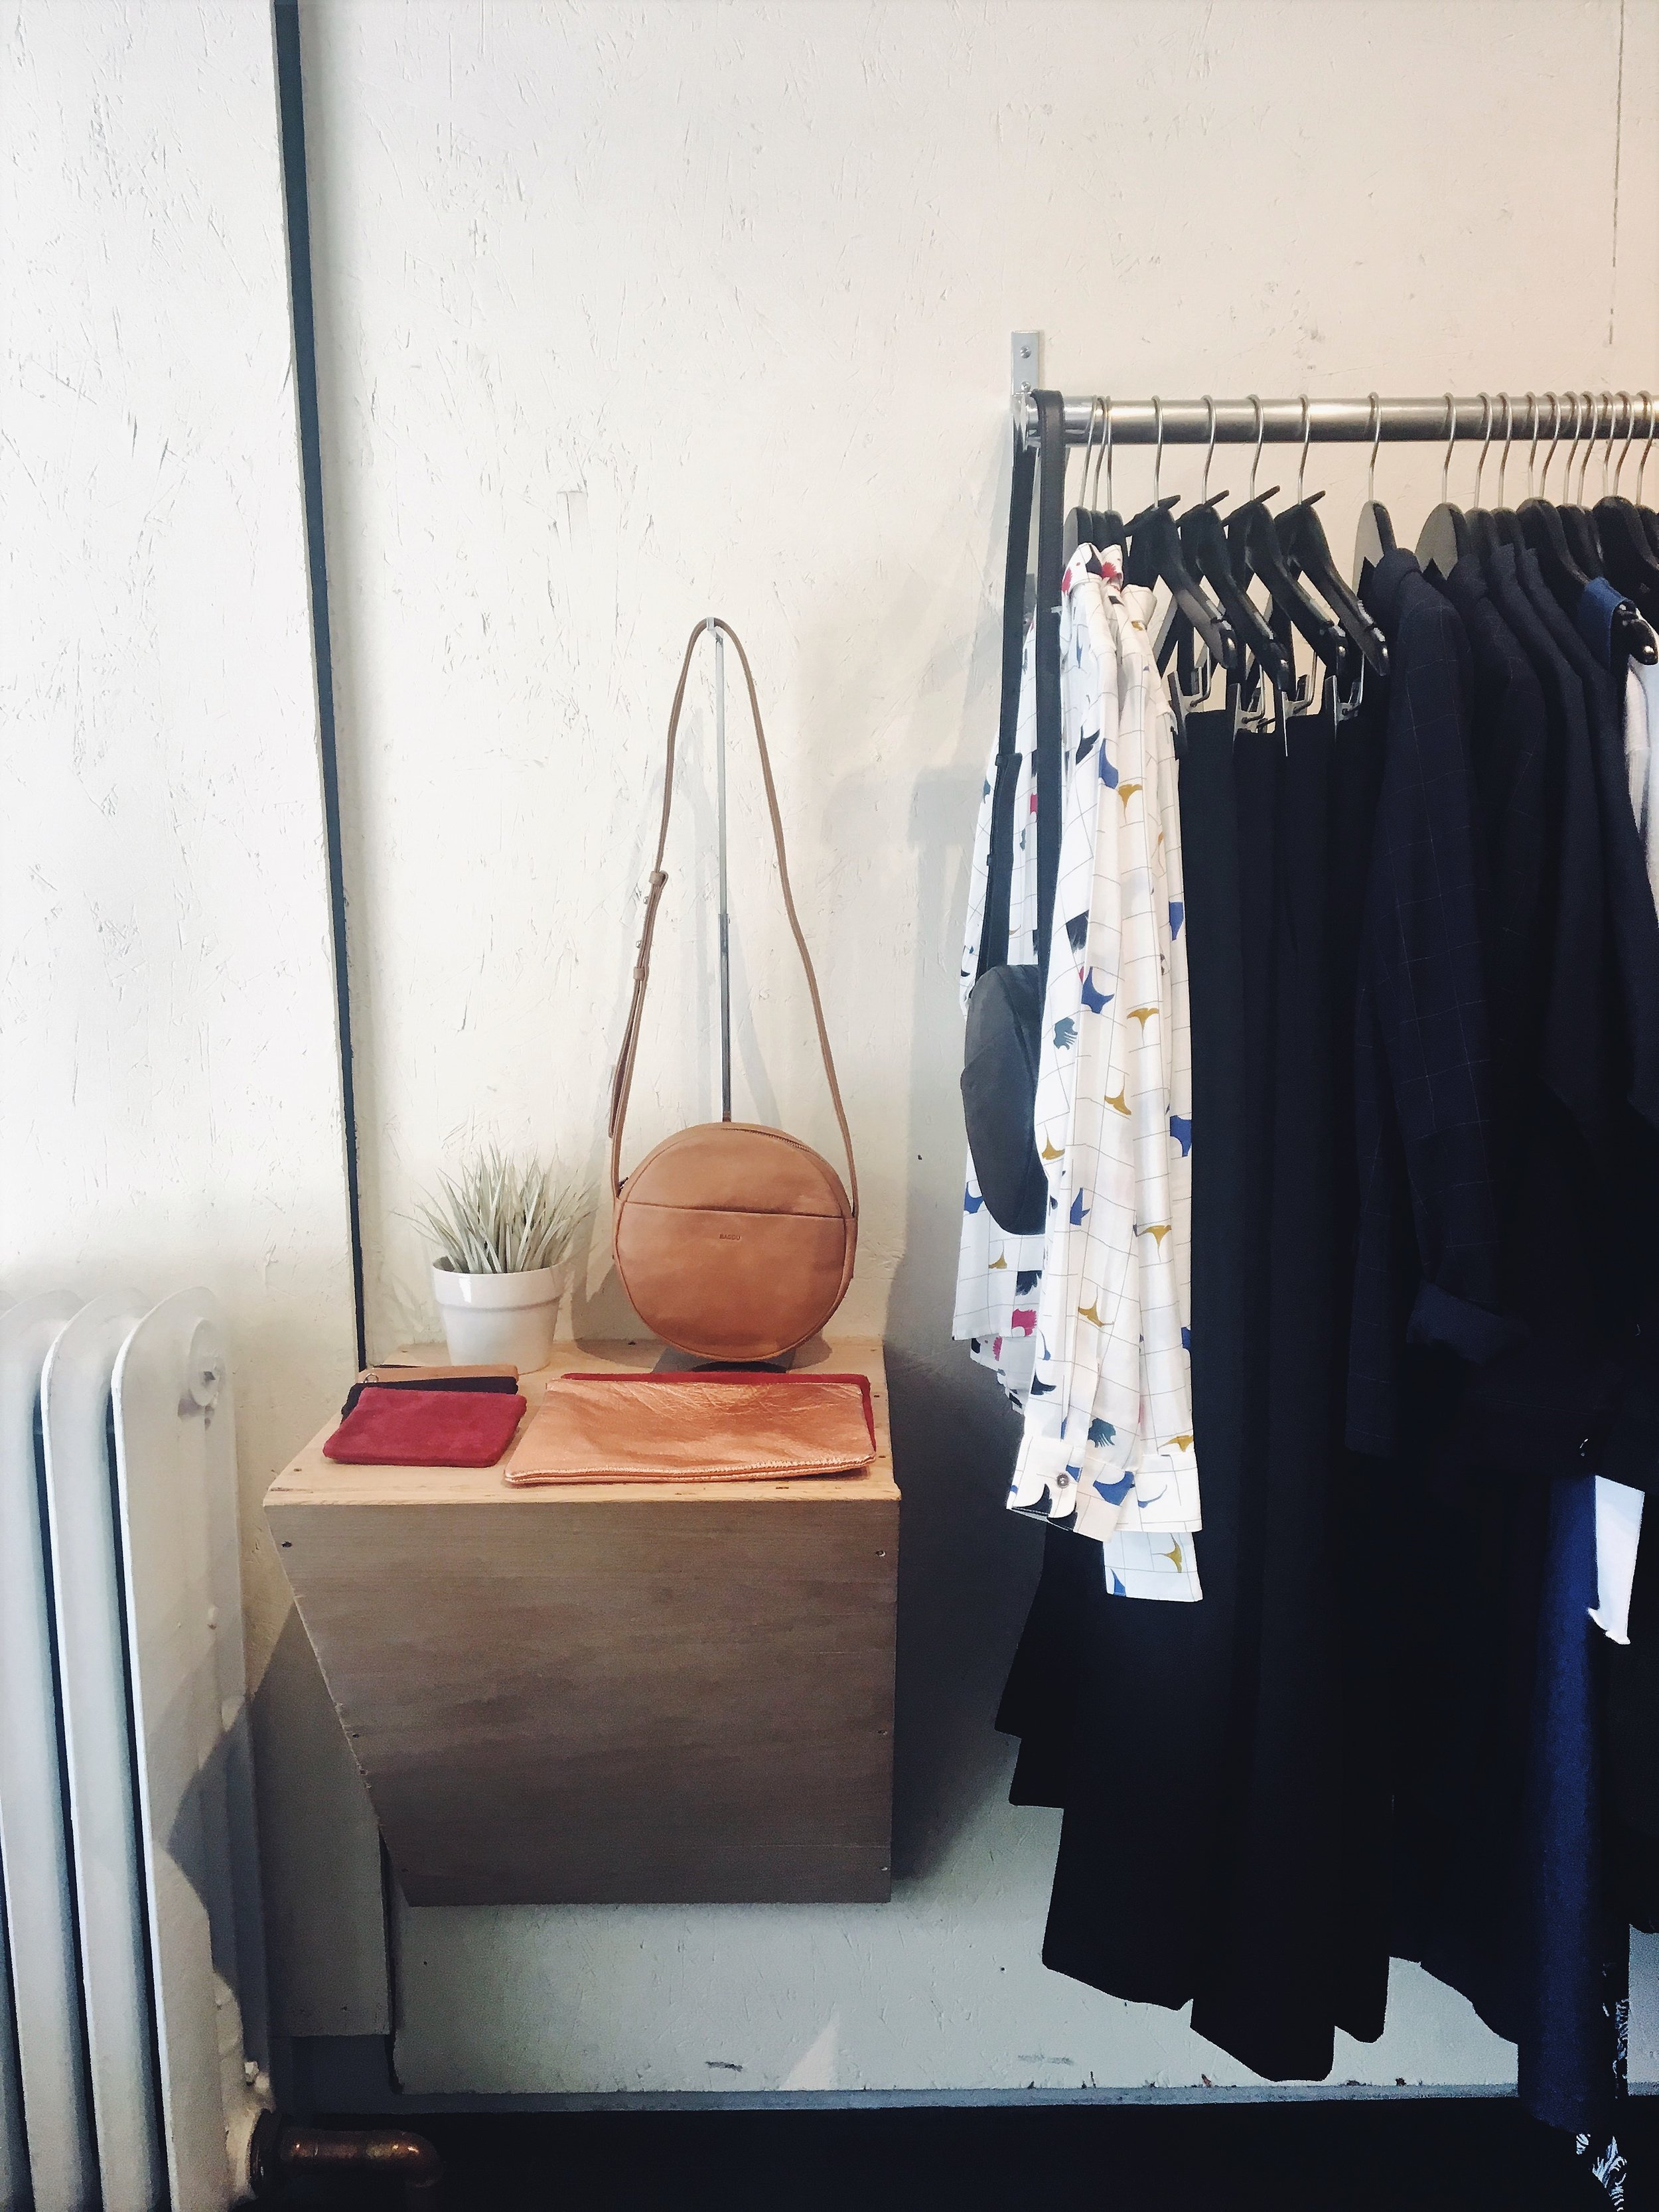 Brooklyn is full of cute boutiques such as  Bird  and  Catbird  (albeit, quite pricey). However, one store I did like and found to be affordable (nabbed myself a little something) is  Article& (shown here).